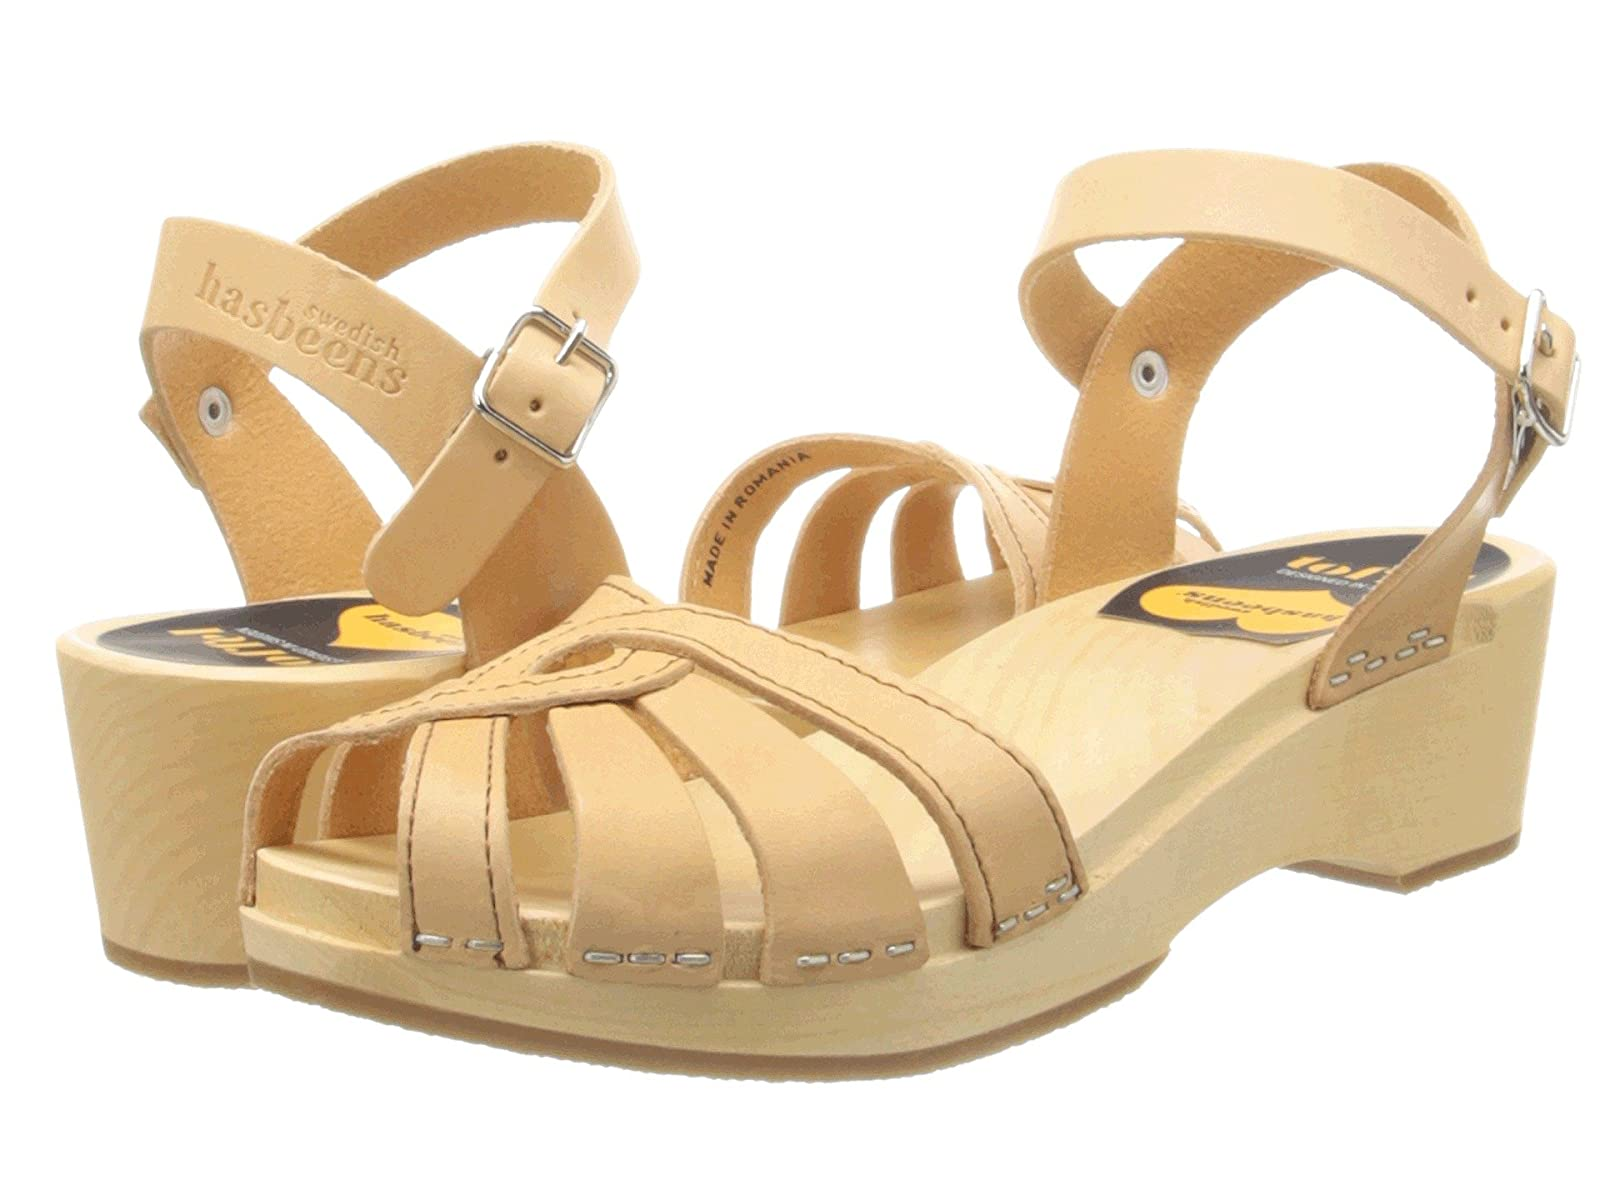 Swedish Hasbeens Cross Strap DebutantCheap and distinctive eye-catching shoes